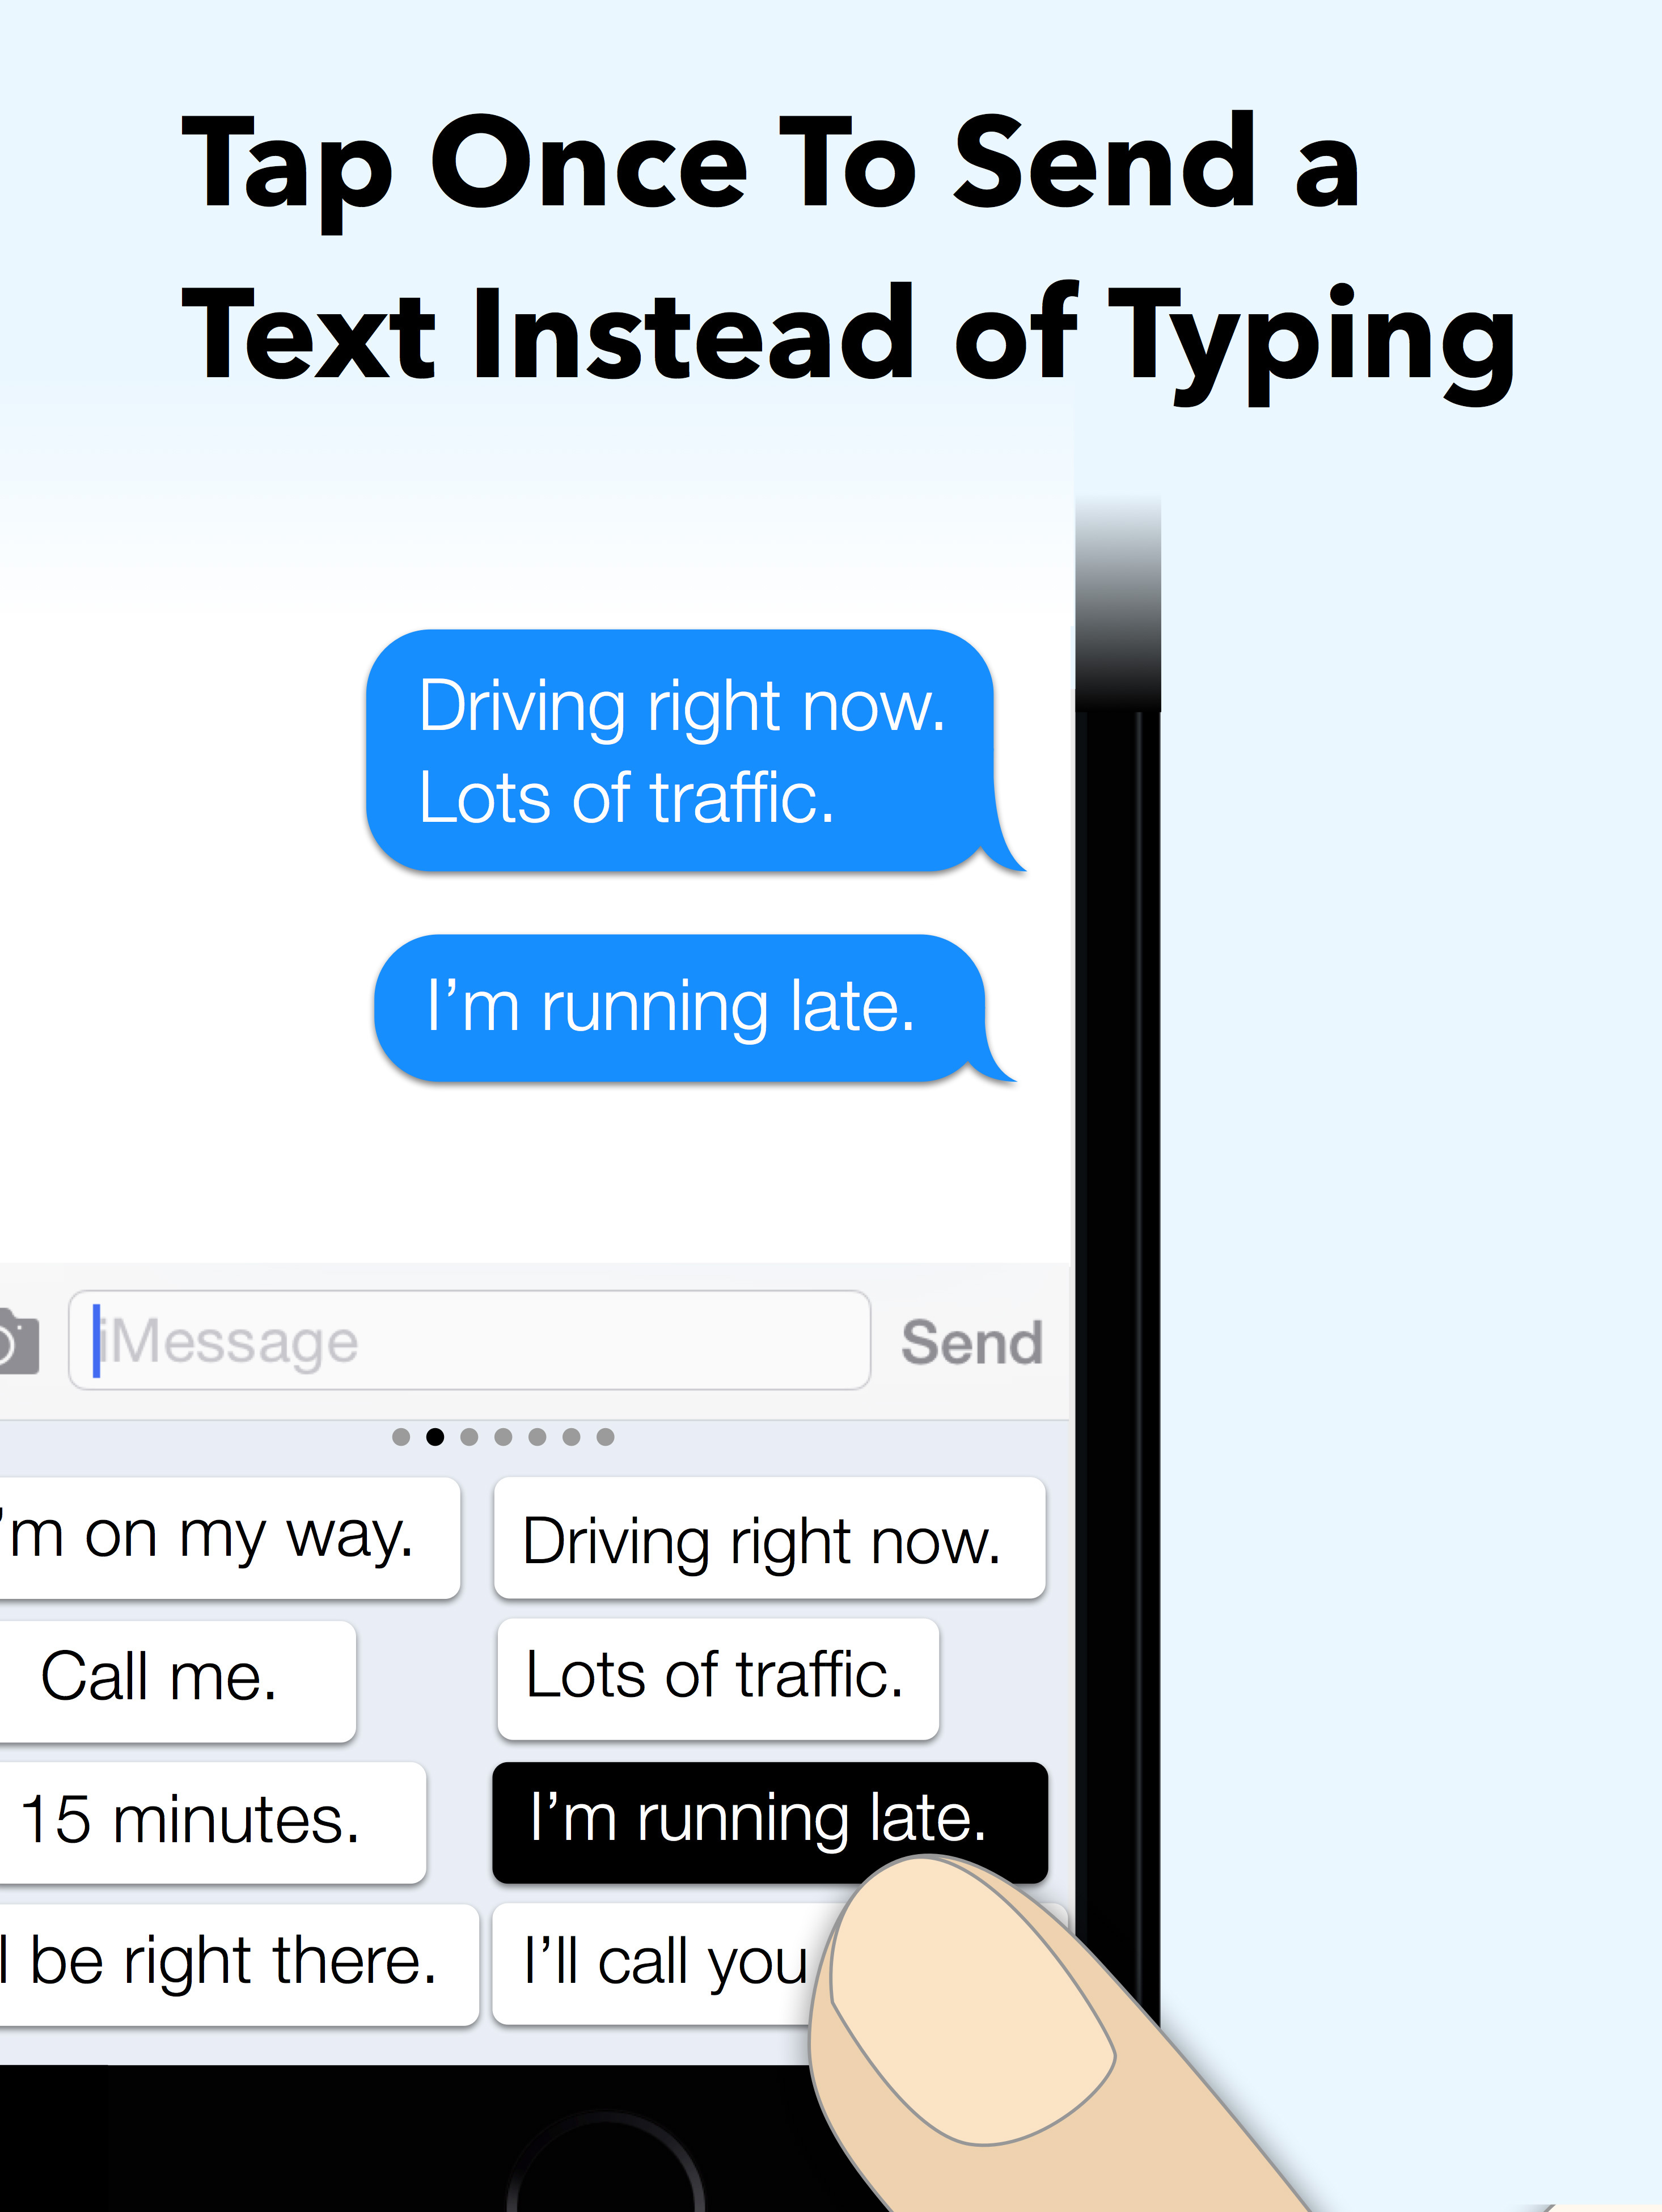 Reduce Your Typing While Driving – New iPhone Keyboard Lets You Send